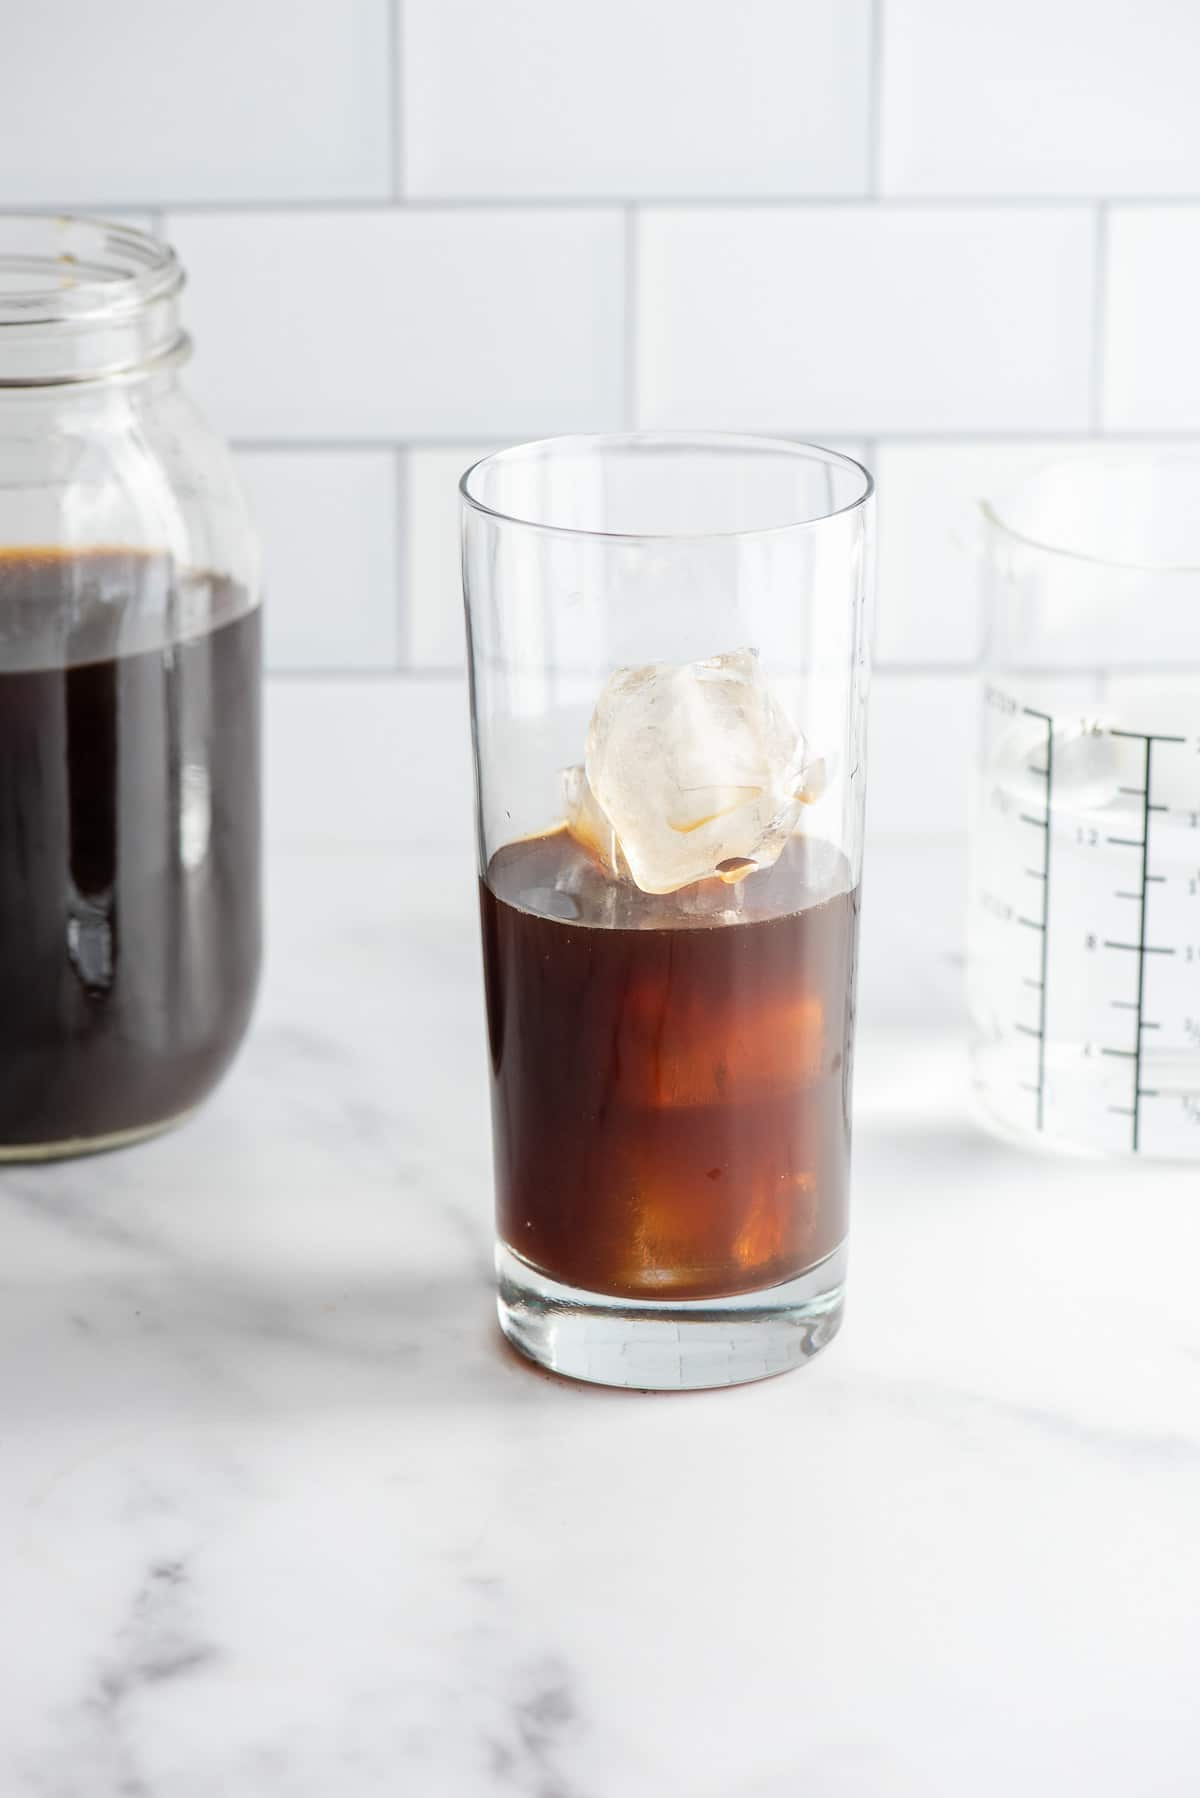 Making Cold Brew Coffee from homemade coffee concentrate in a glass with ice